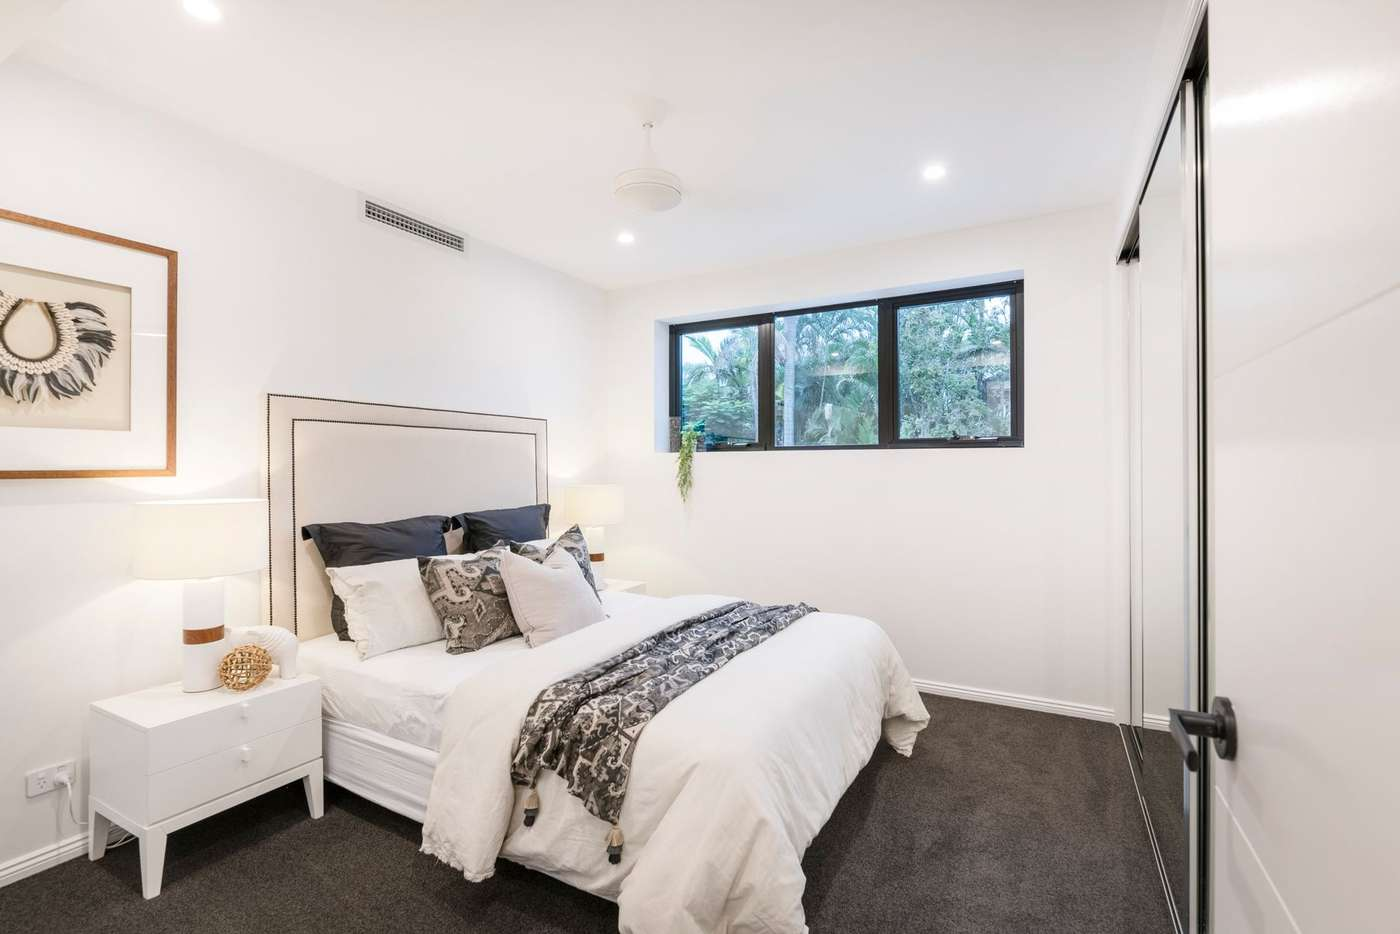 Sixth view of Homely townhouse listing, 3/48 Monmouth Street, Morningside QLD 4170